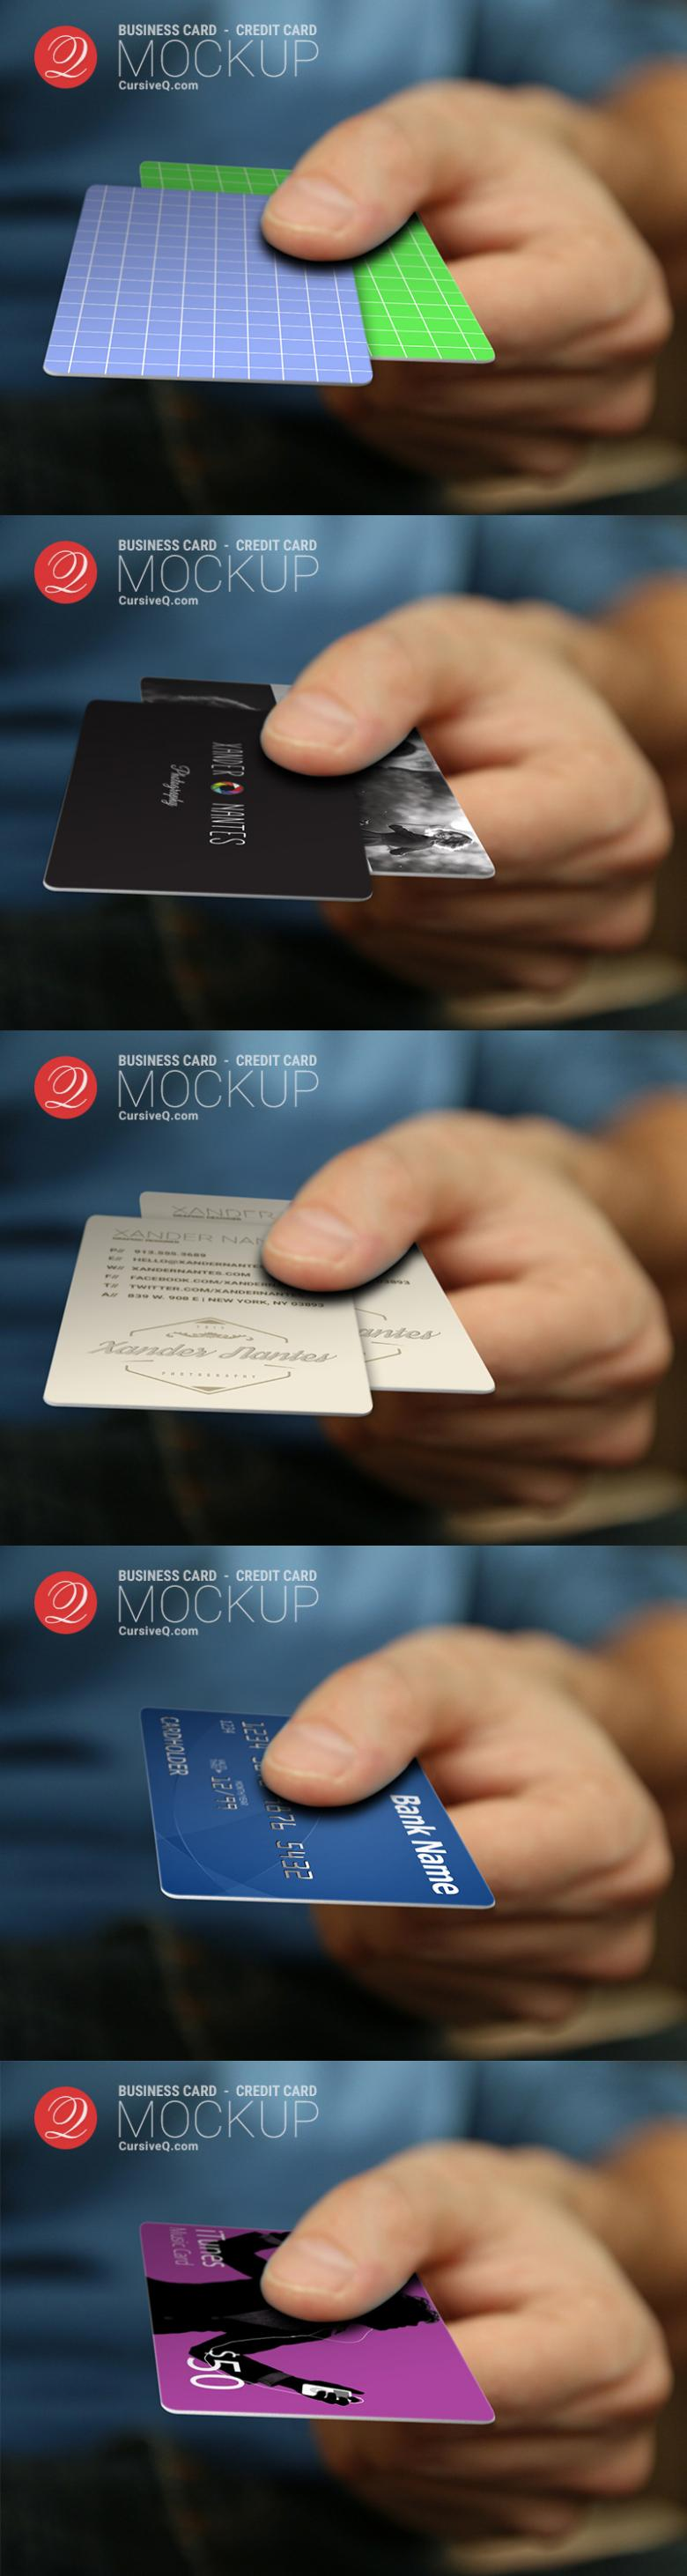 Free Business Card or Credit Card in Hand Mockup